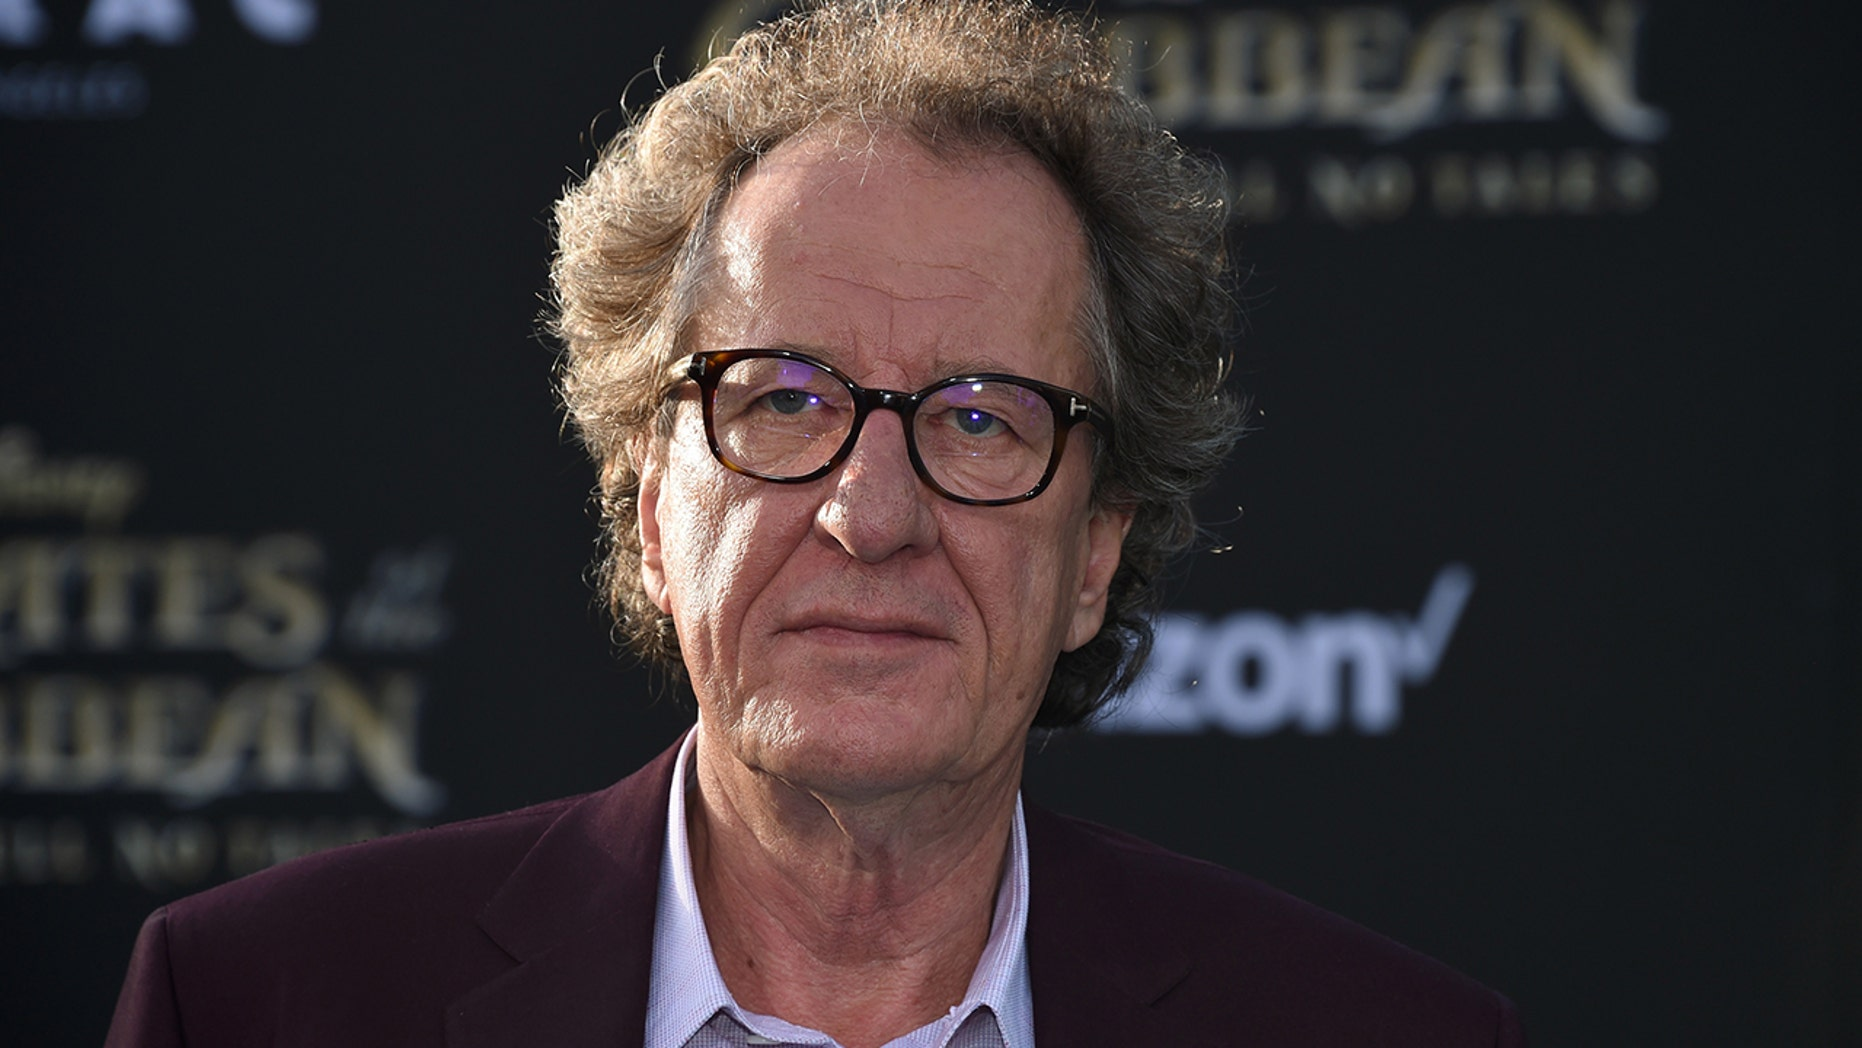 Geoffrey Rush is denying accusationsof touching a woman inappropriately.